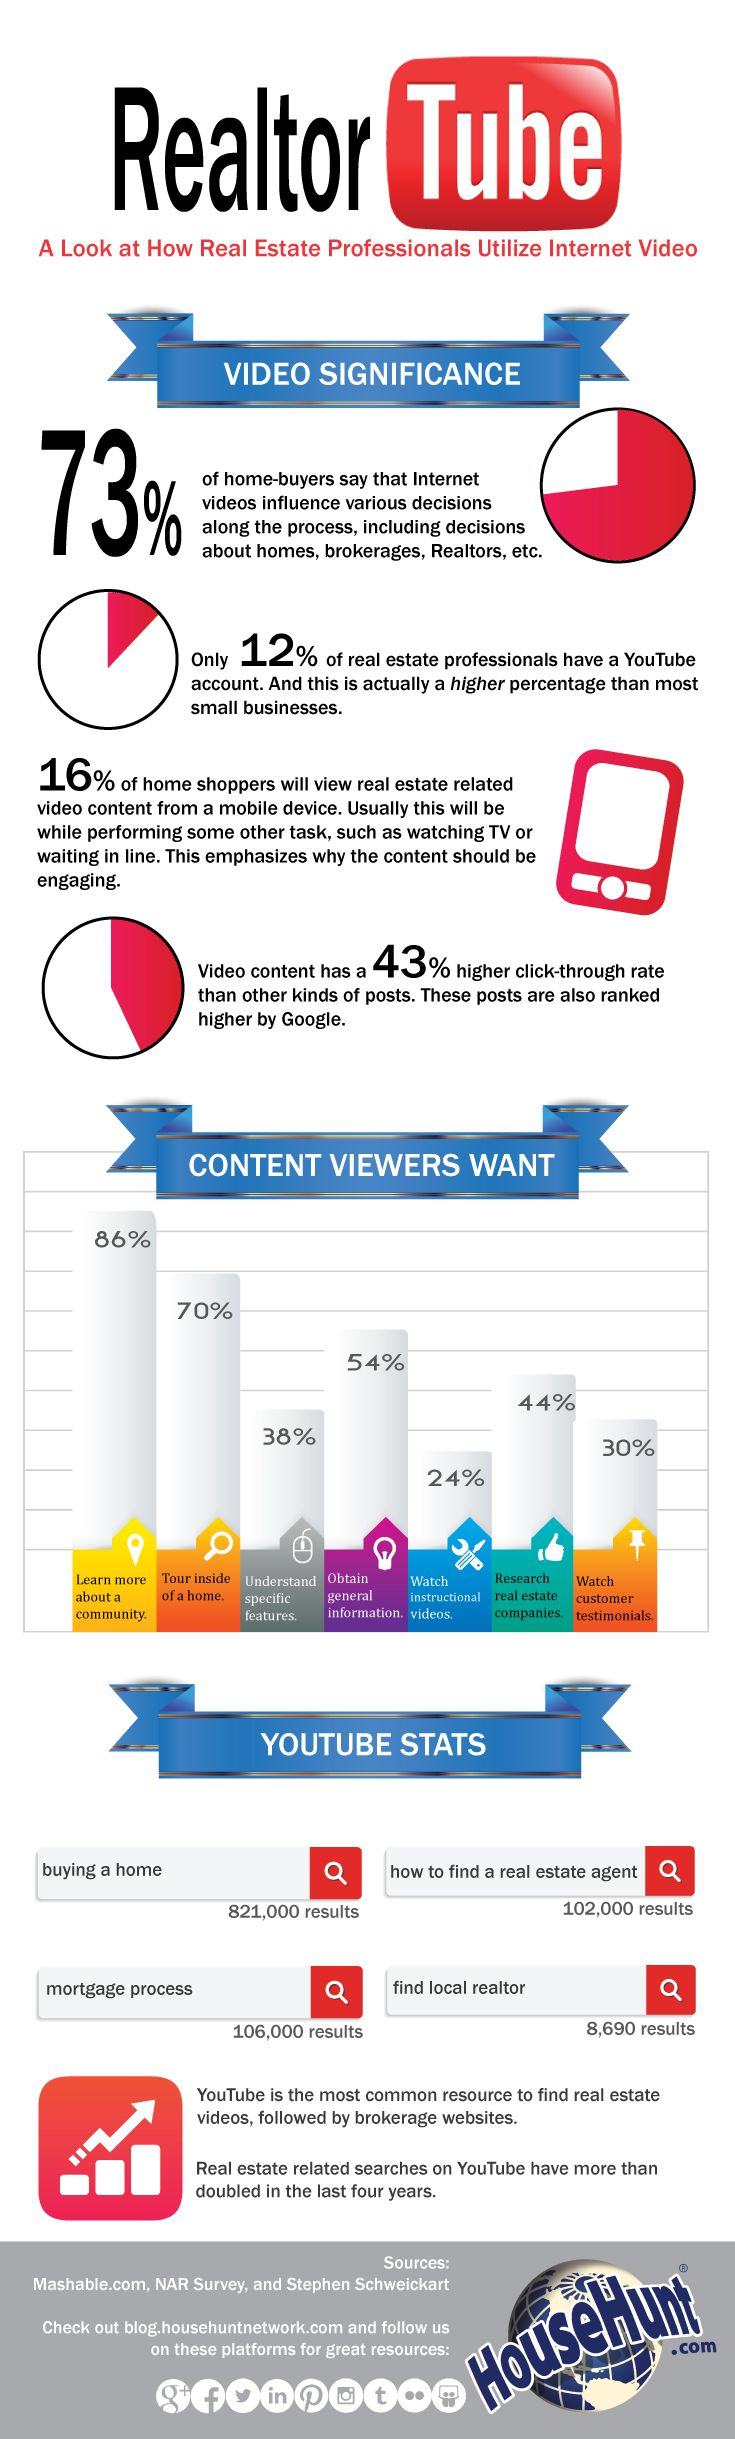 Real Estate #Video Marketing #Infographic : http://www.blog.househuntnetwork.com/real-estate-video-marketing/